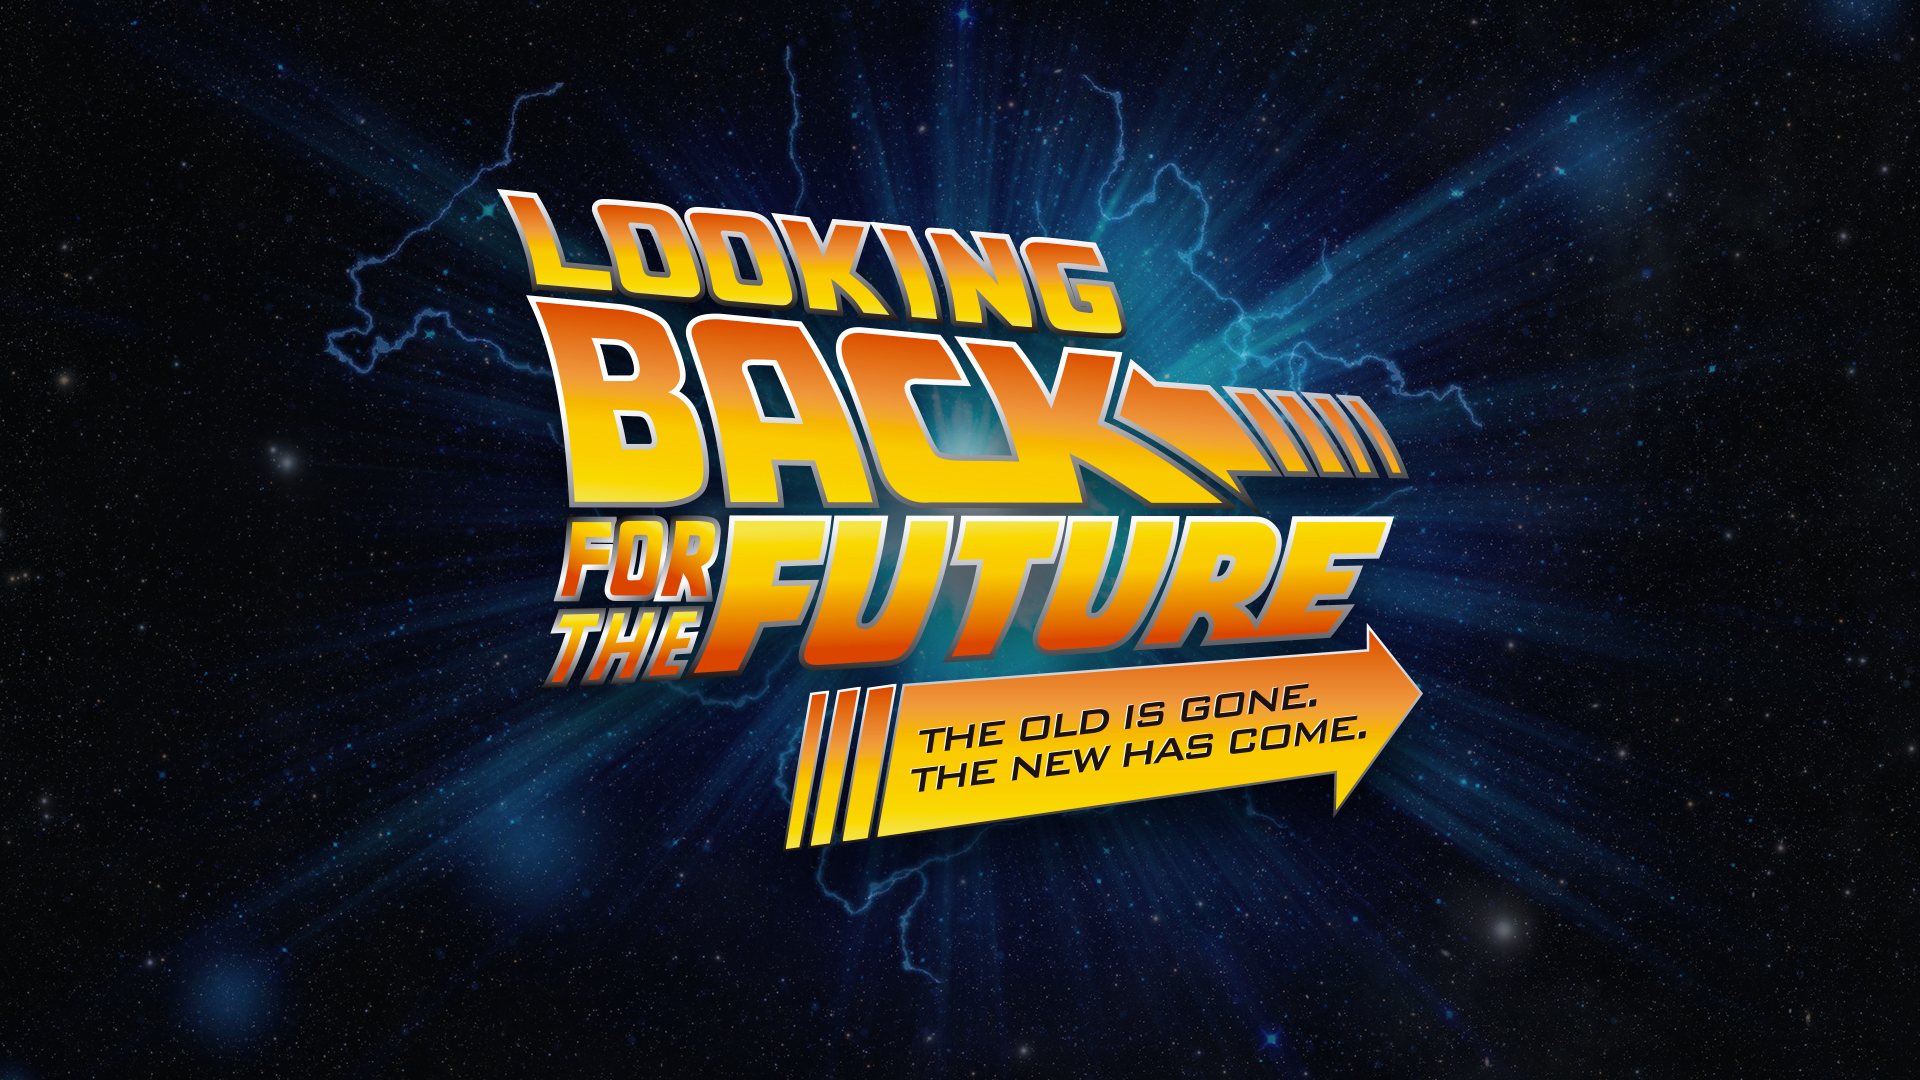 Looking Back for the Future